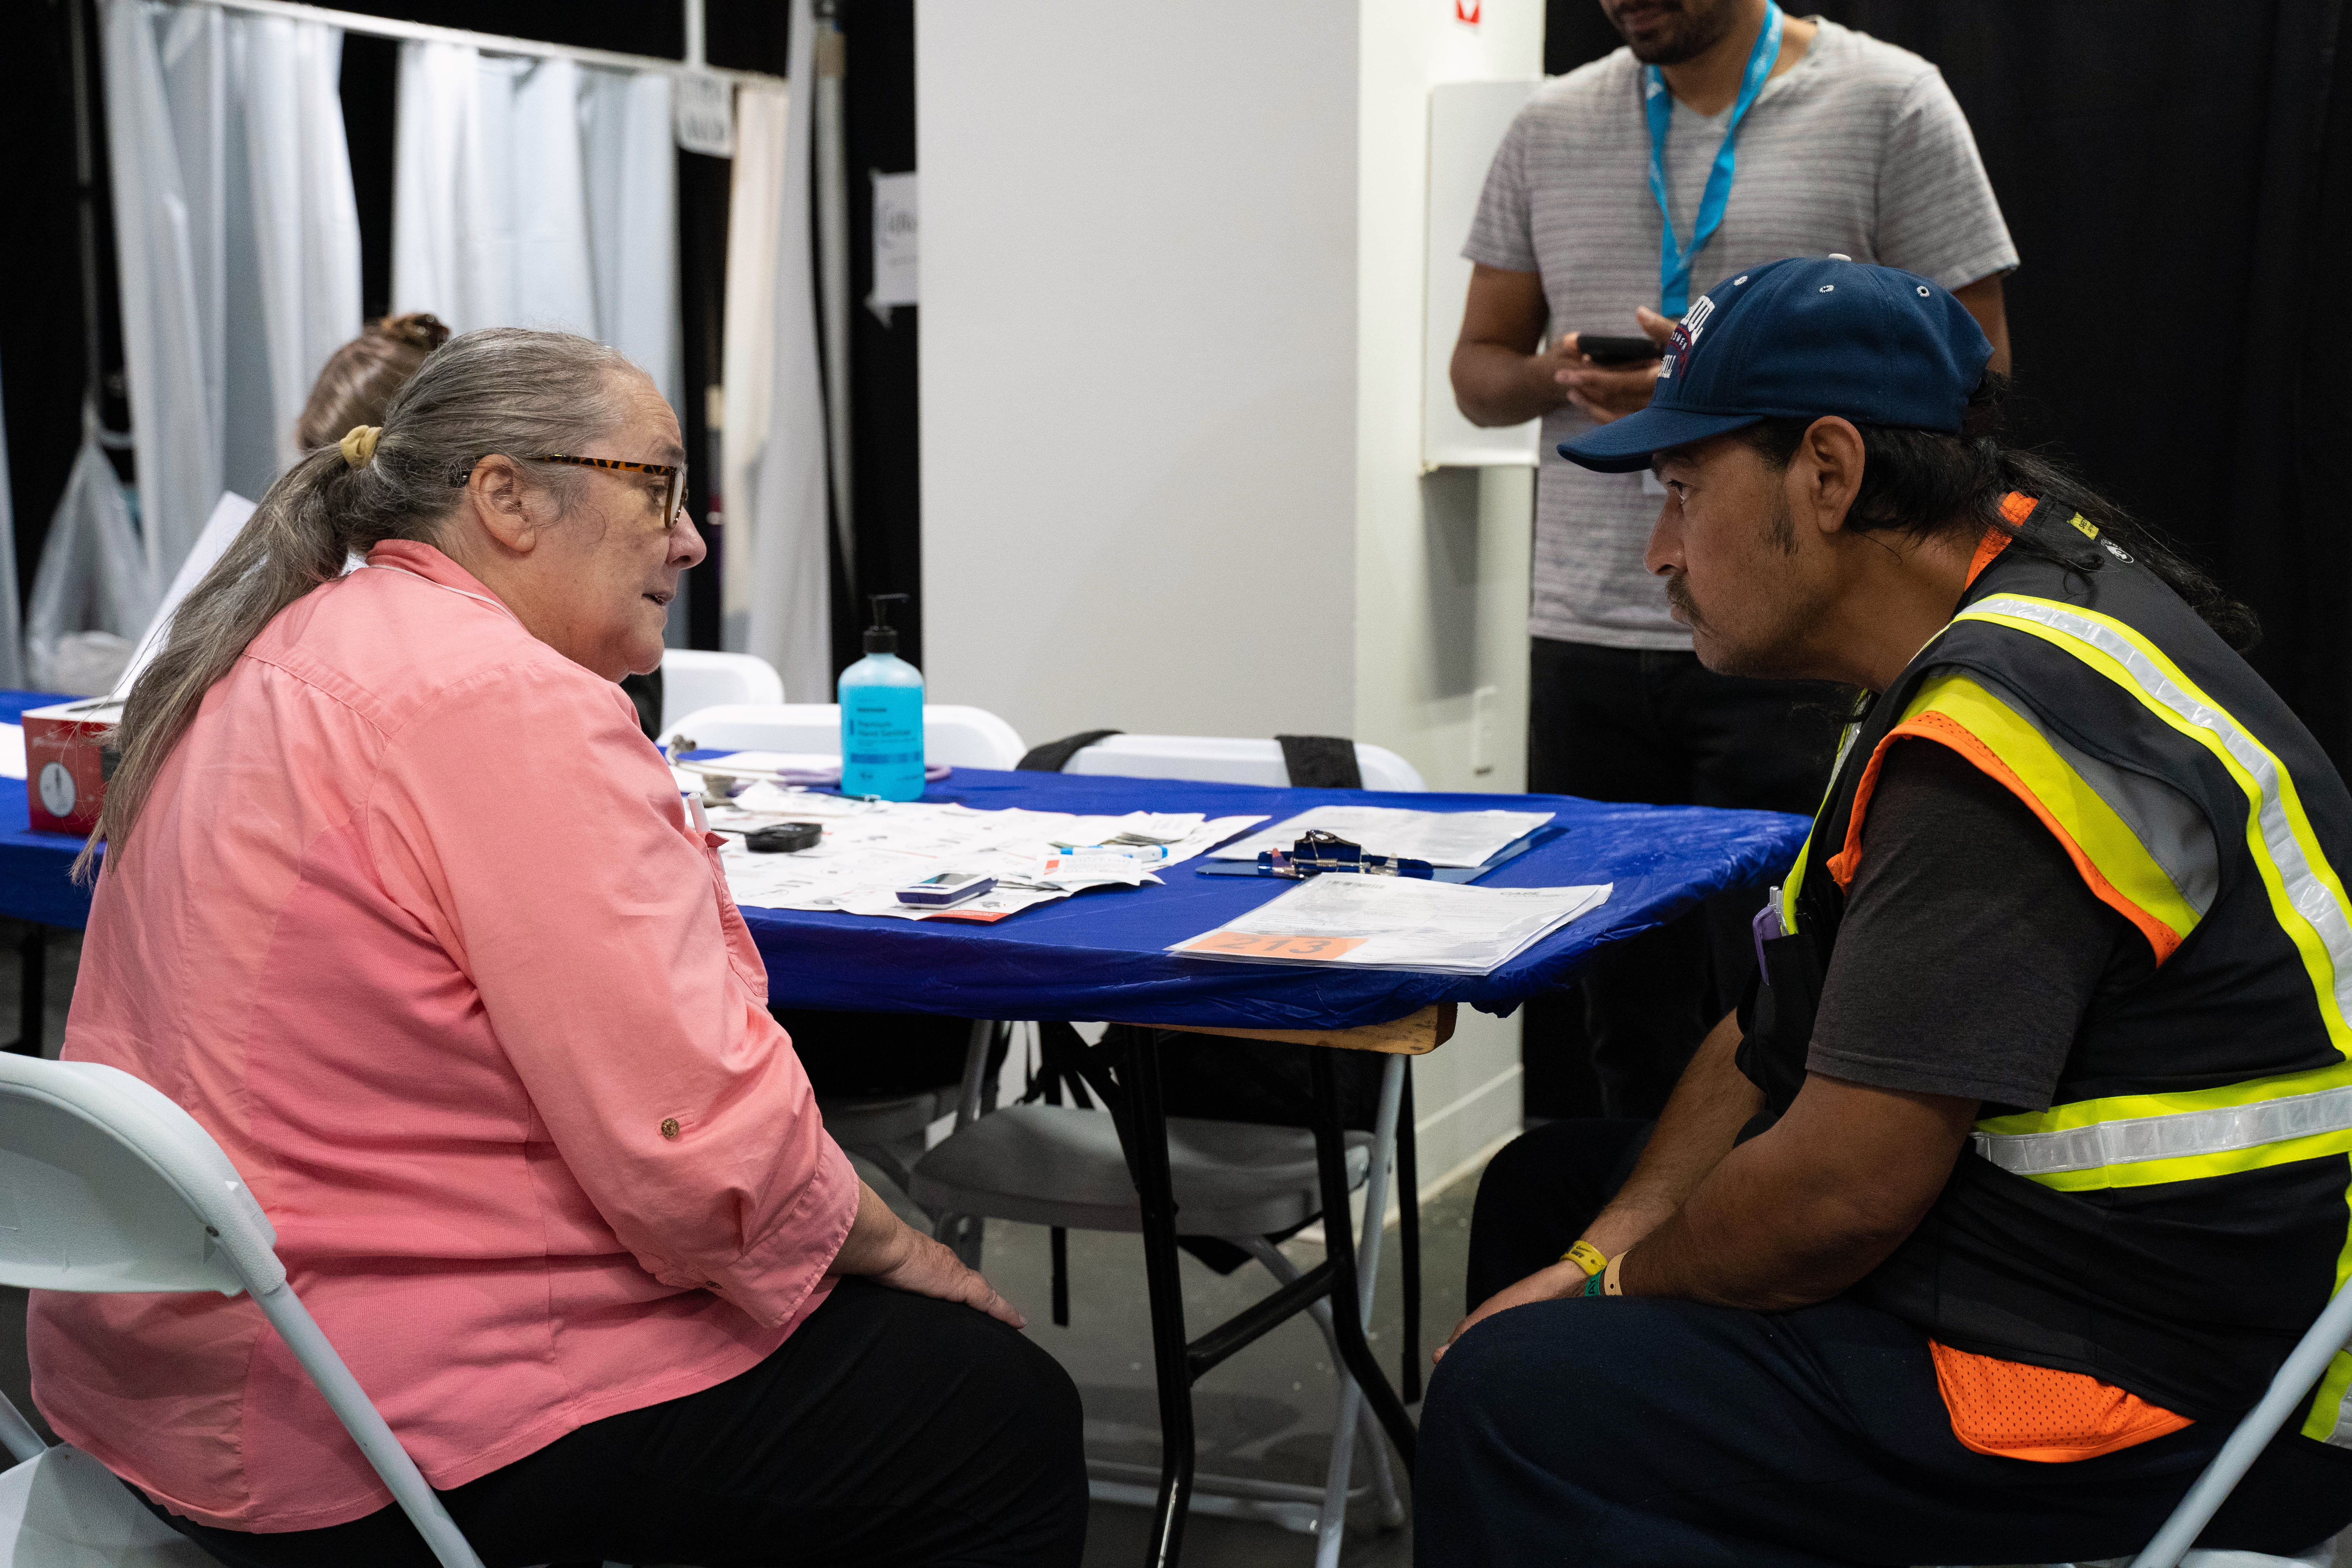 More than 300 UCLA health care providers treat the homeless at Care Harbor free clinic